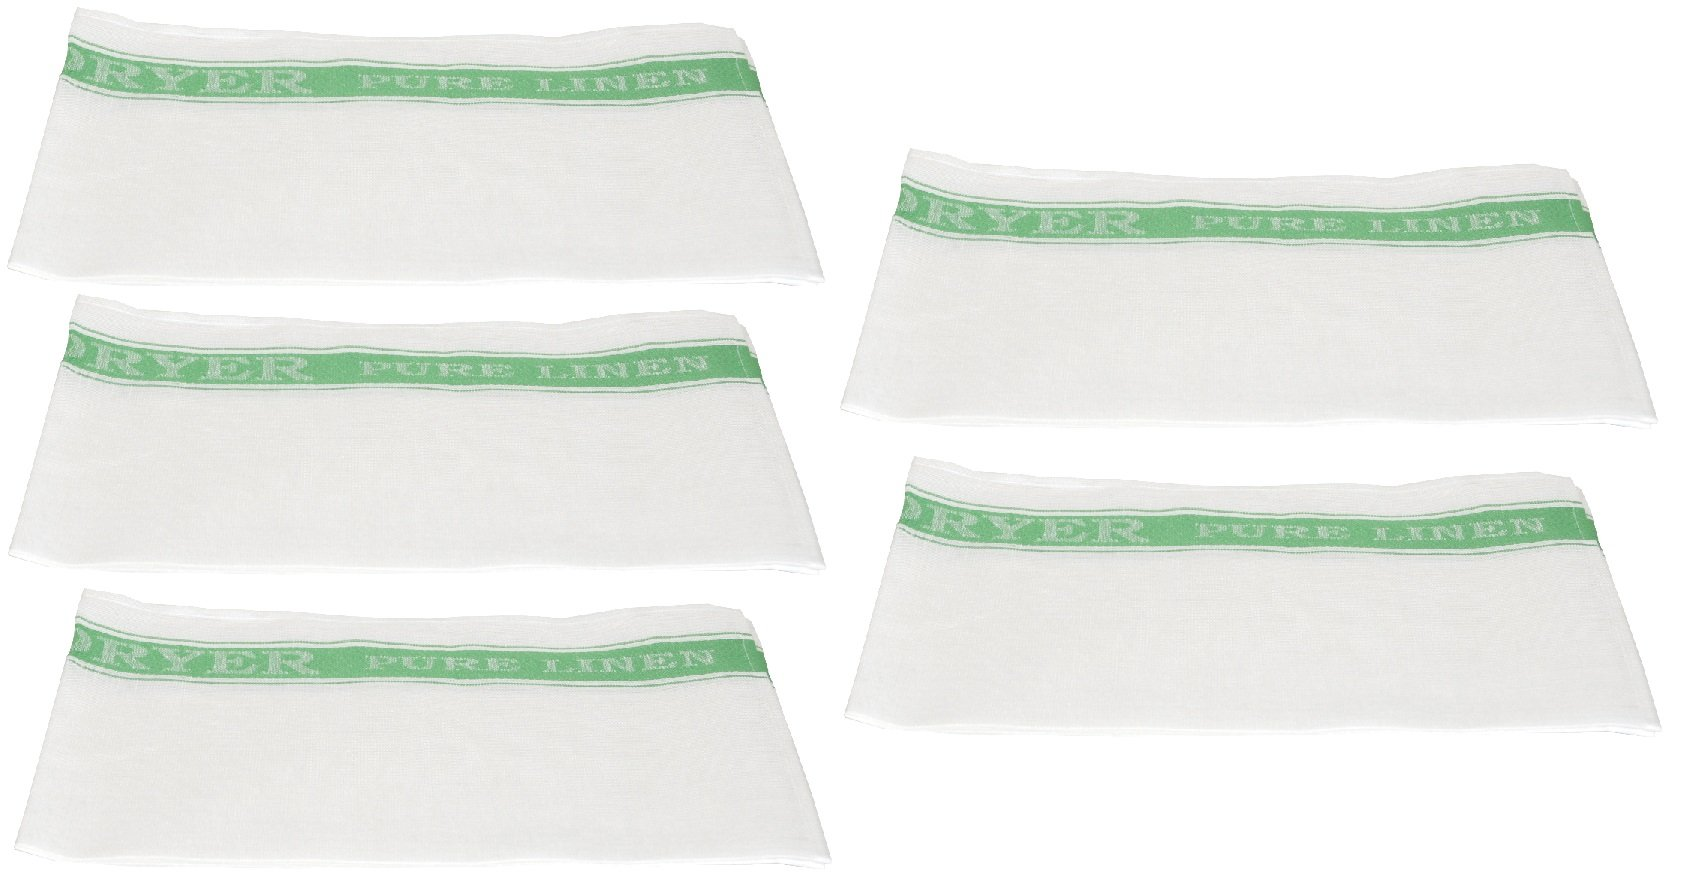 McCaw Allan Easi-Dryer Linen Glass Cloth Sets GREEN (5) by McCAW ALLAN